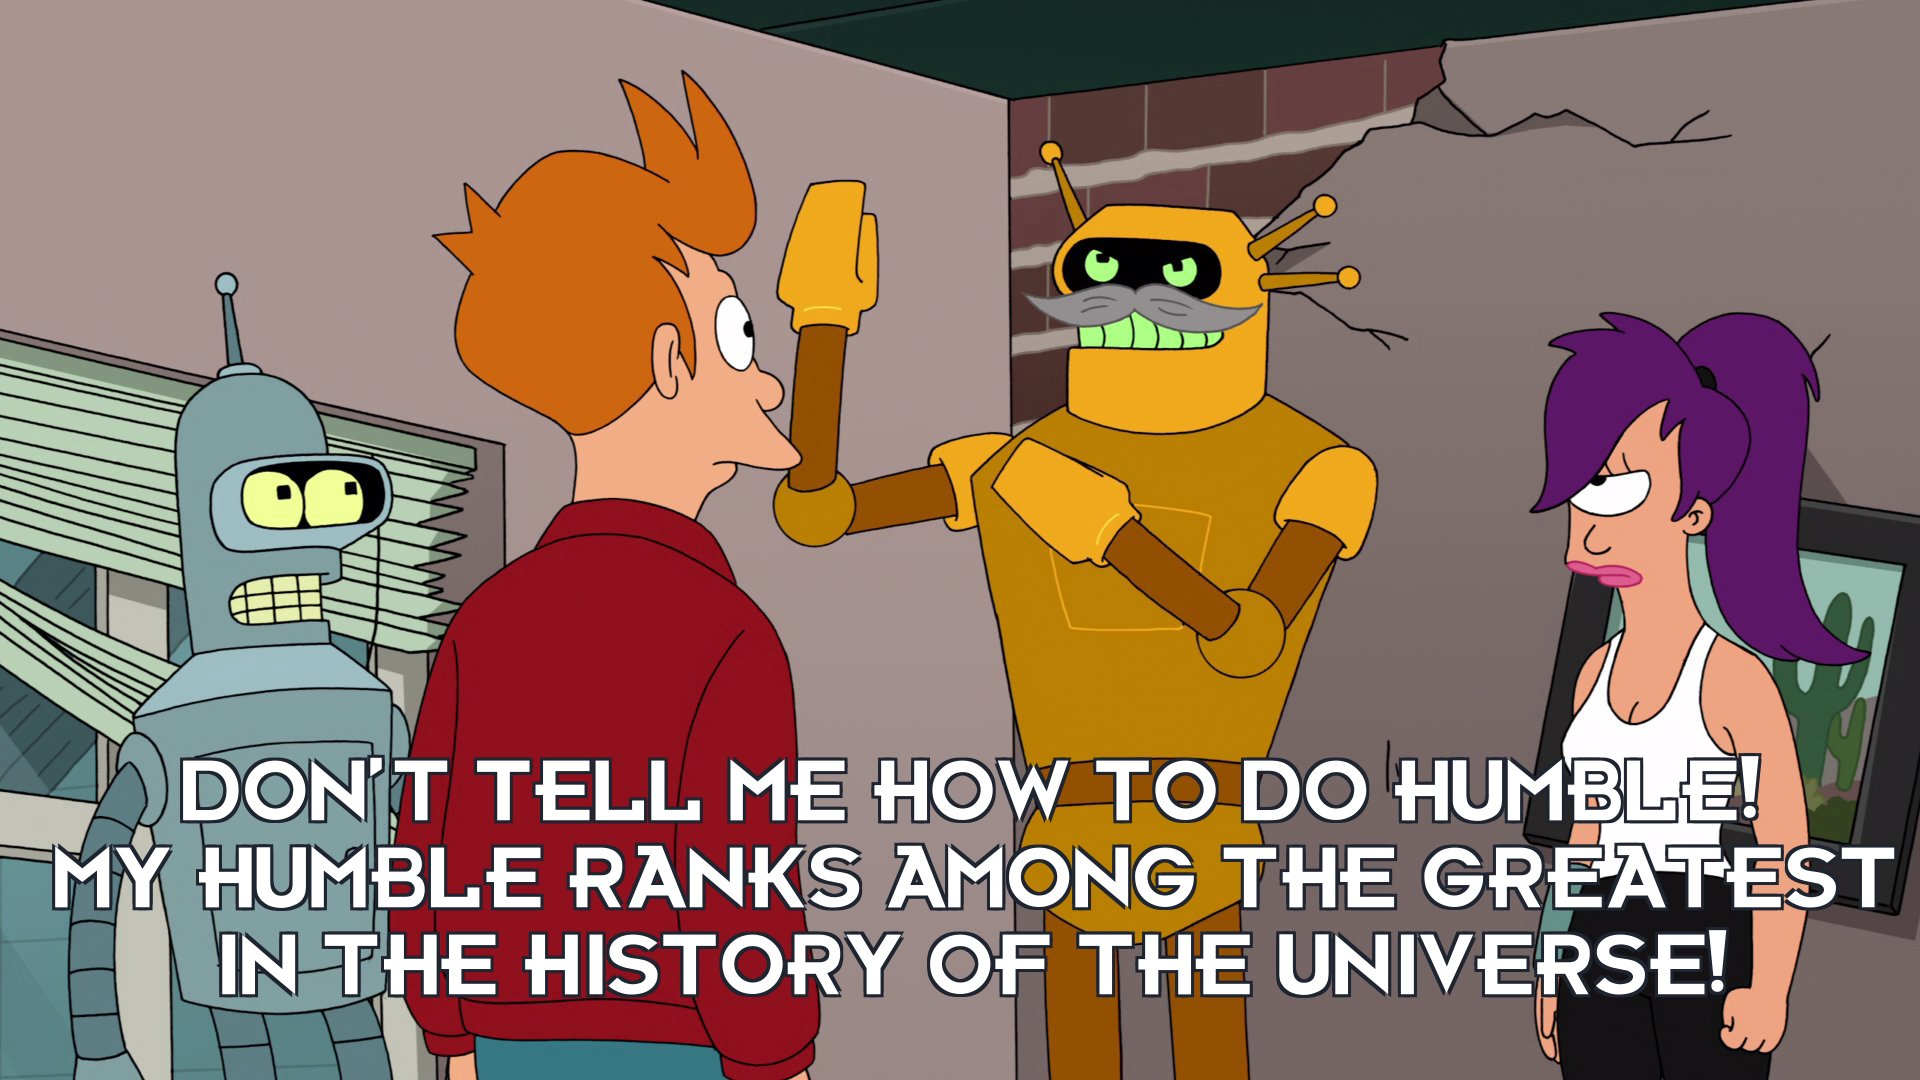 Calculon: Don't tell me how to do humble! My humble ranks among the greatest in the history of the Universe!